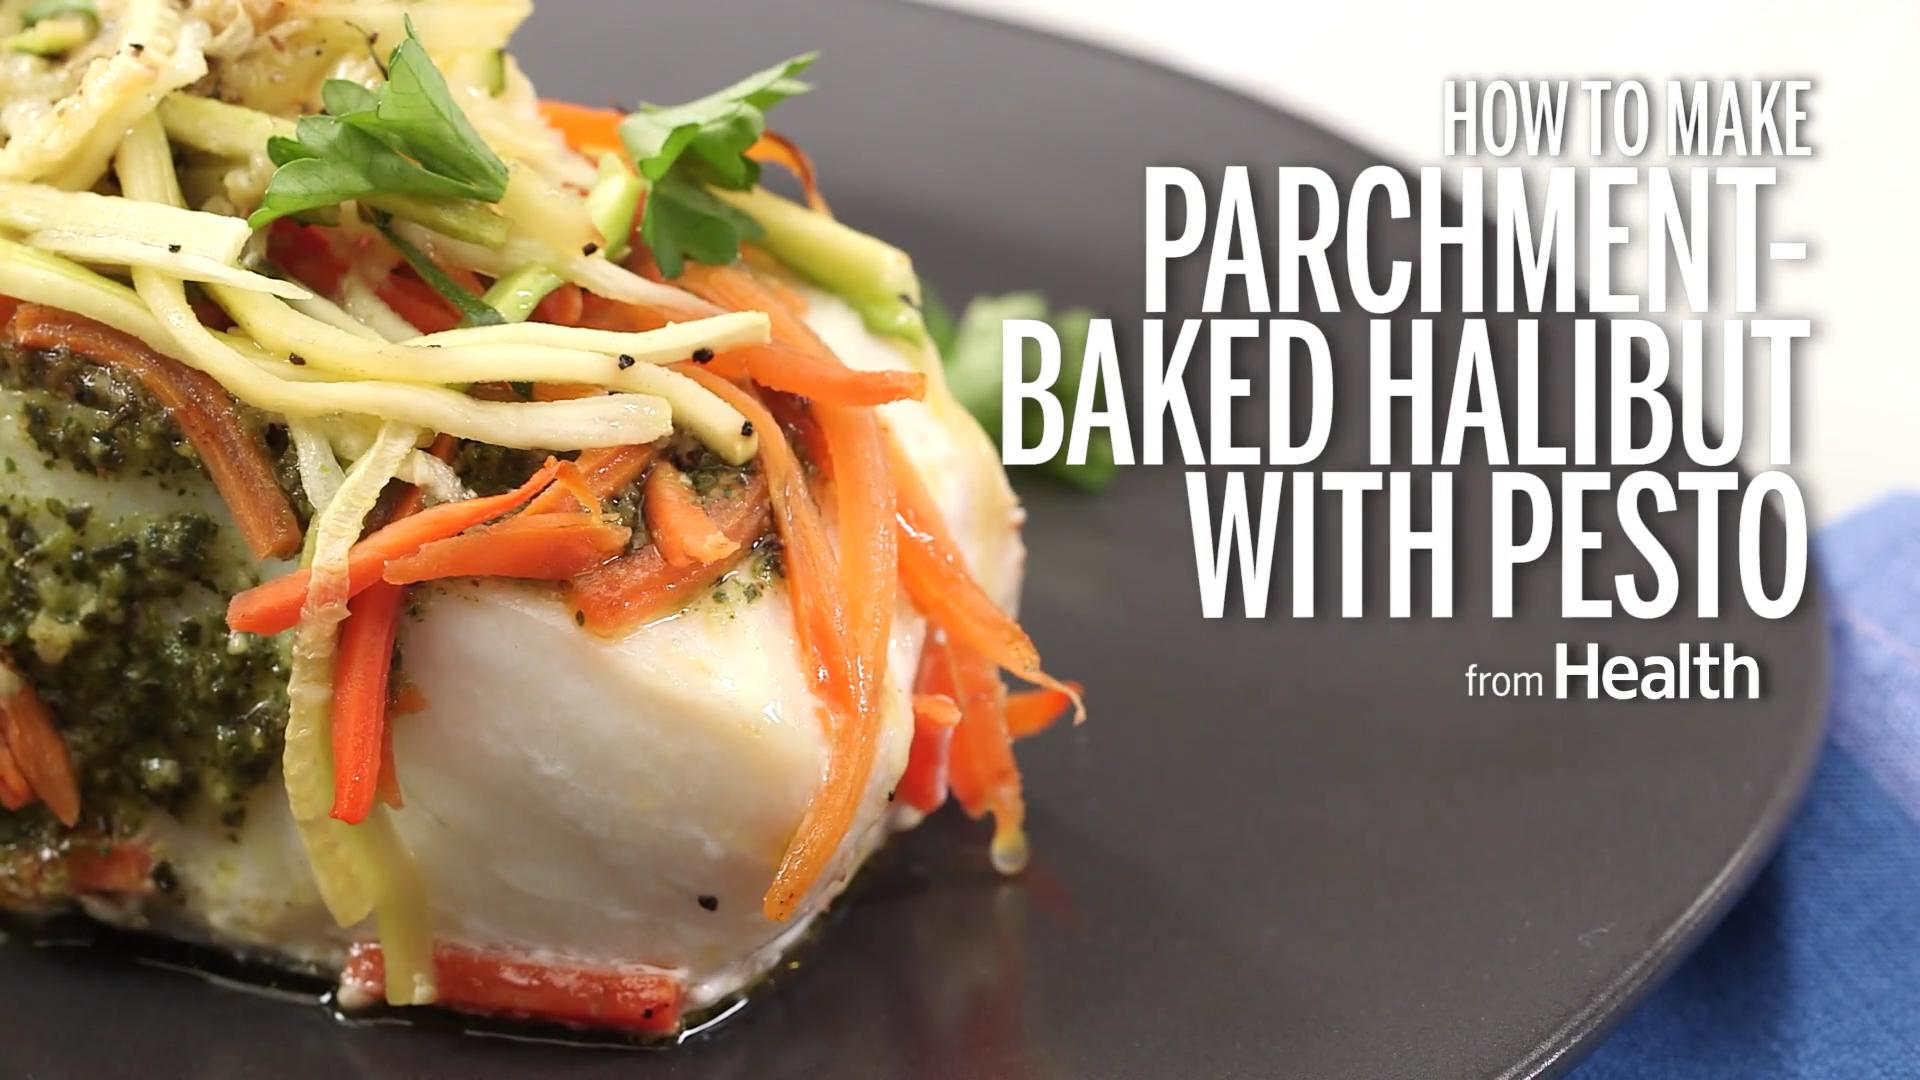 Parchment-Baked Halibut With Pesto, Zucchini, and Carrots